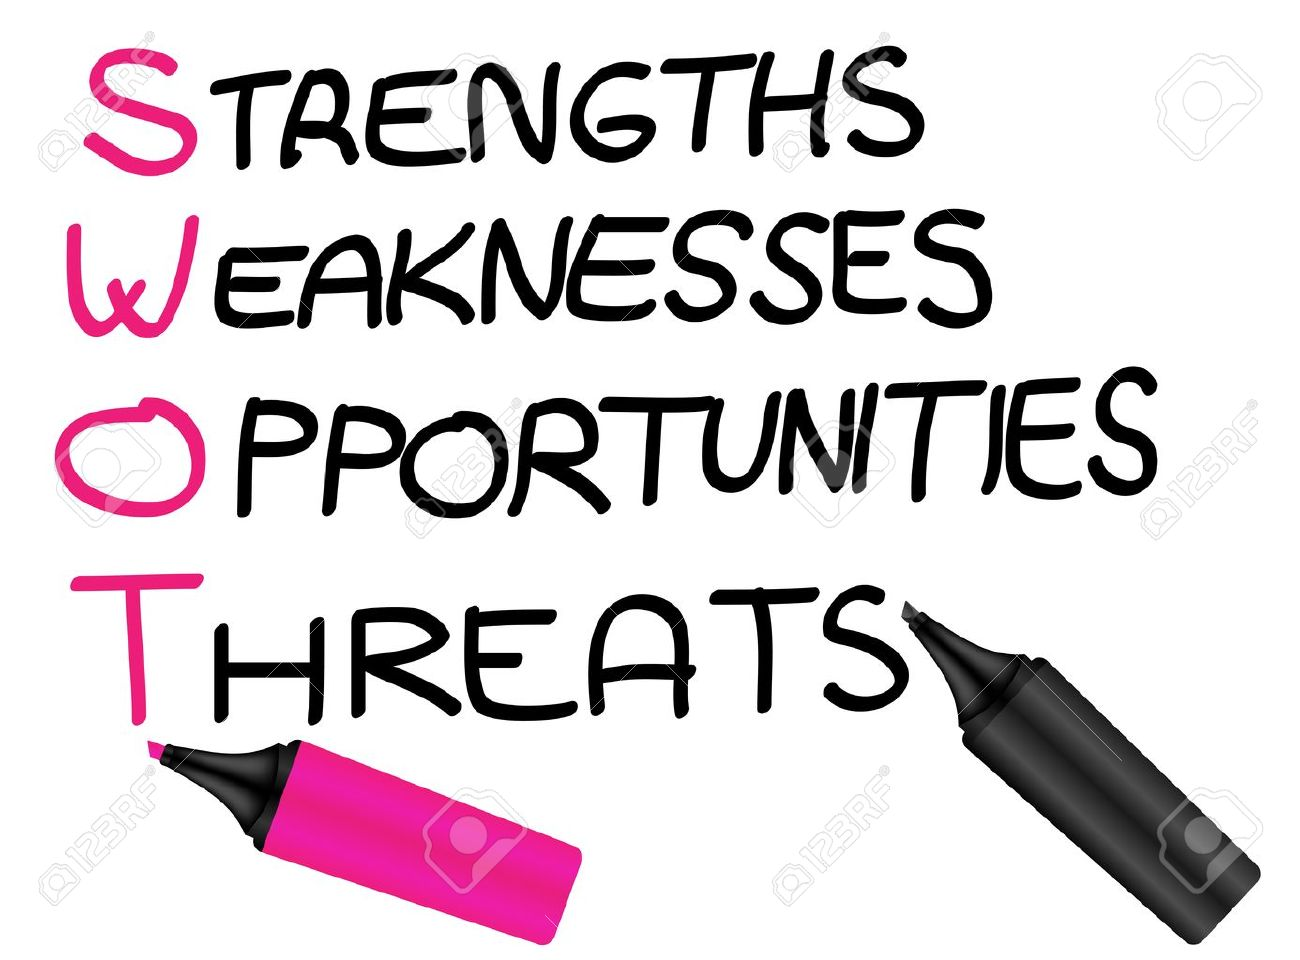 swot sign strengths weaknesses opportunities threats drawn swot sign strengths weaknesses opportunities threats drawn markers stock vector